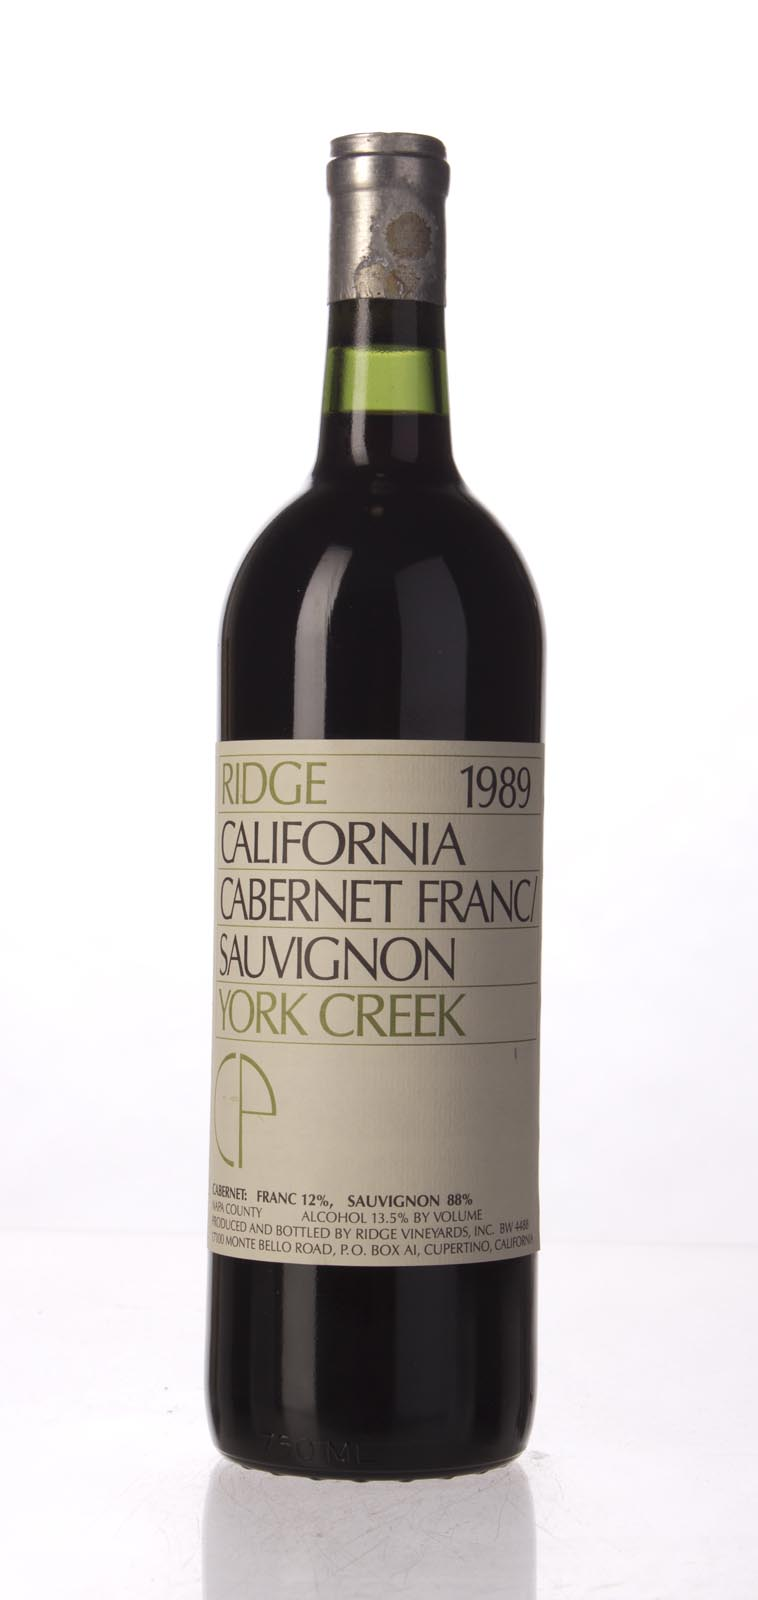 Ridge Cabernet Sauvignon / Cabernet Franc York Creek 1989, 750mL () from The BPW - Merchants of rare and fine wines.